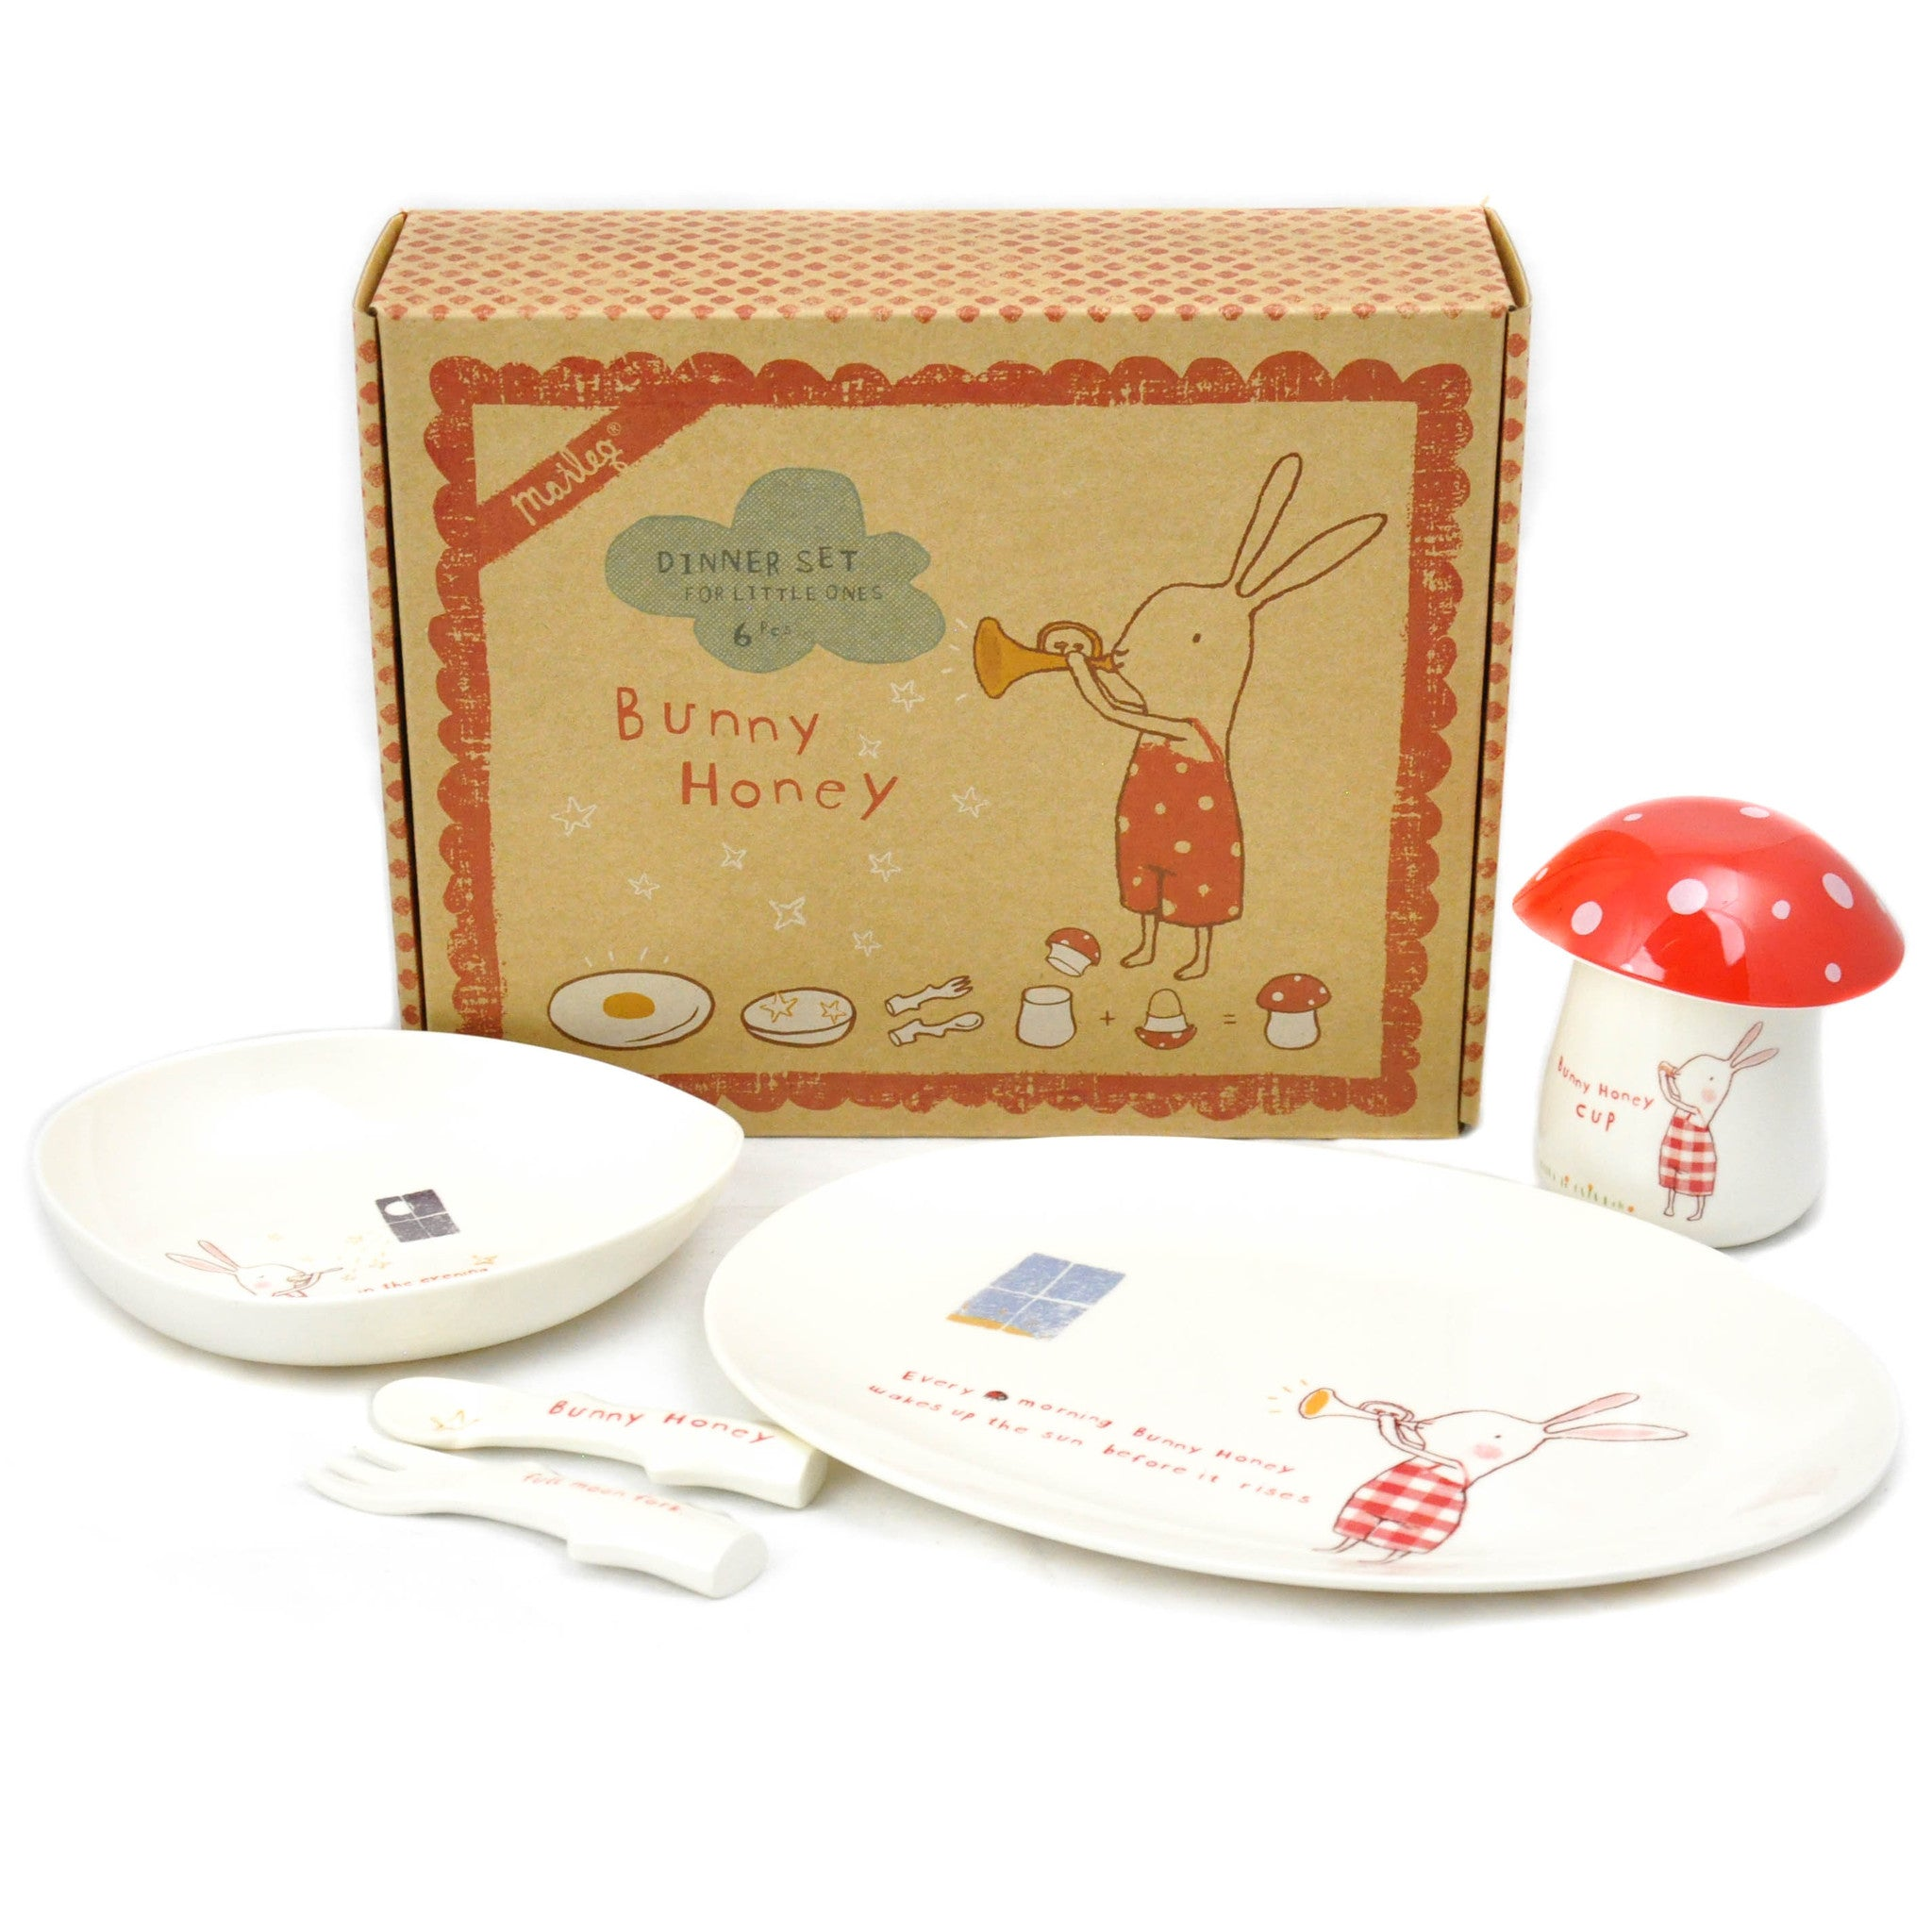 Bunny Honey Red Melamine Giftbox Set - LoveEmme, Product_Type, Product_Vendor